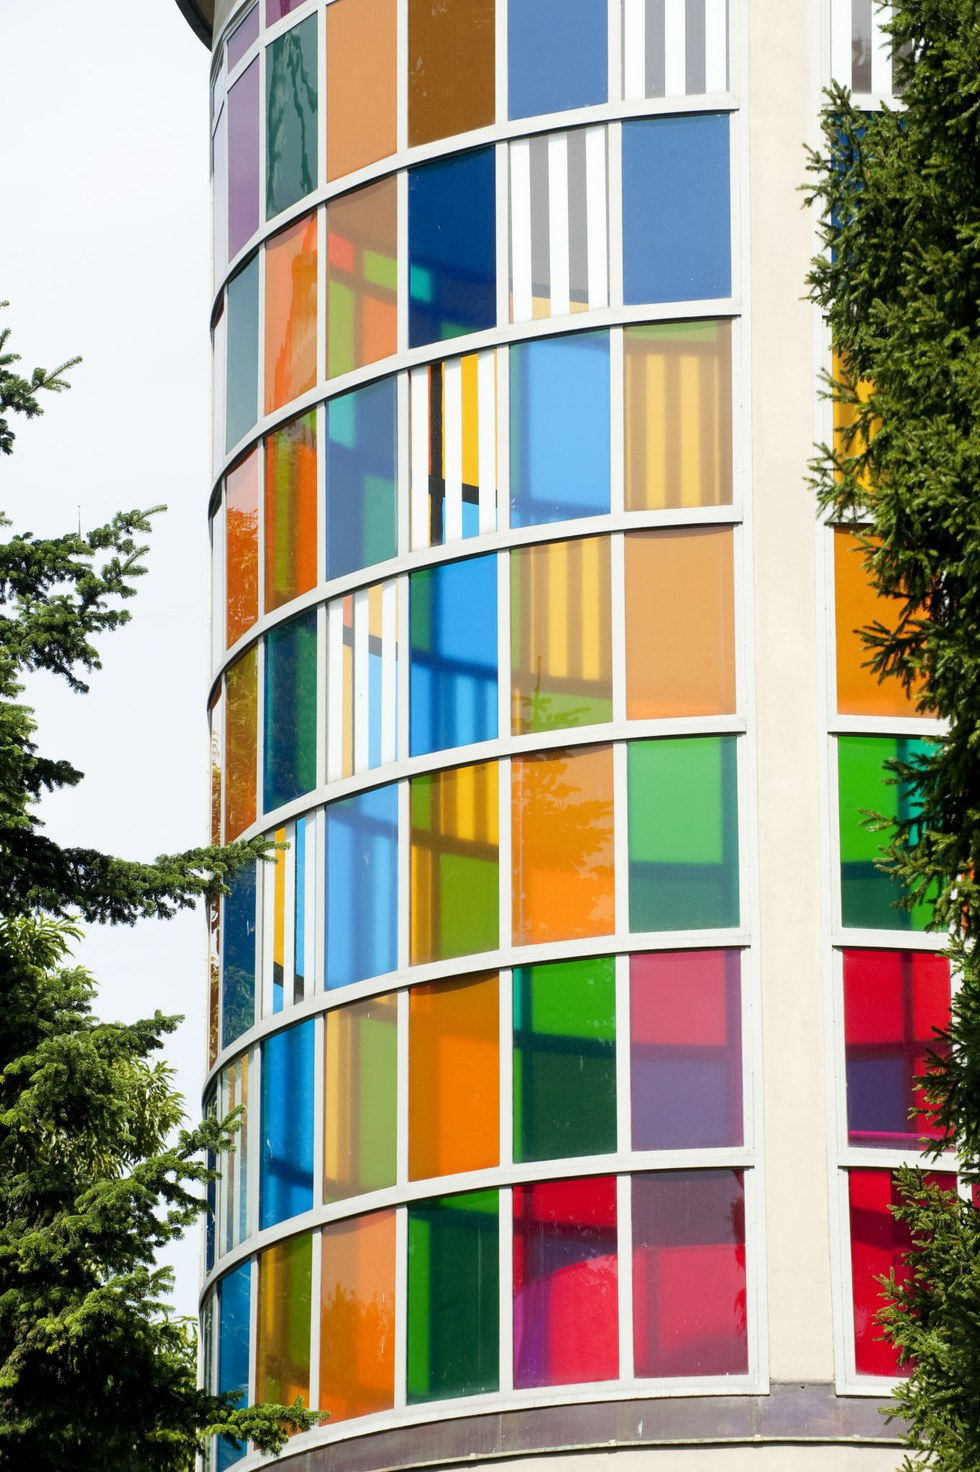 The Triennale's kaleidoscopic tower